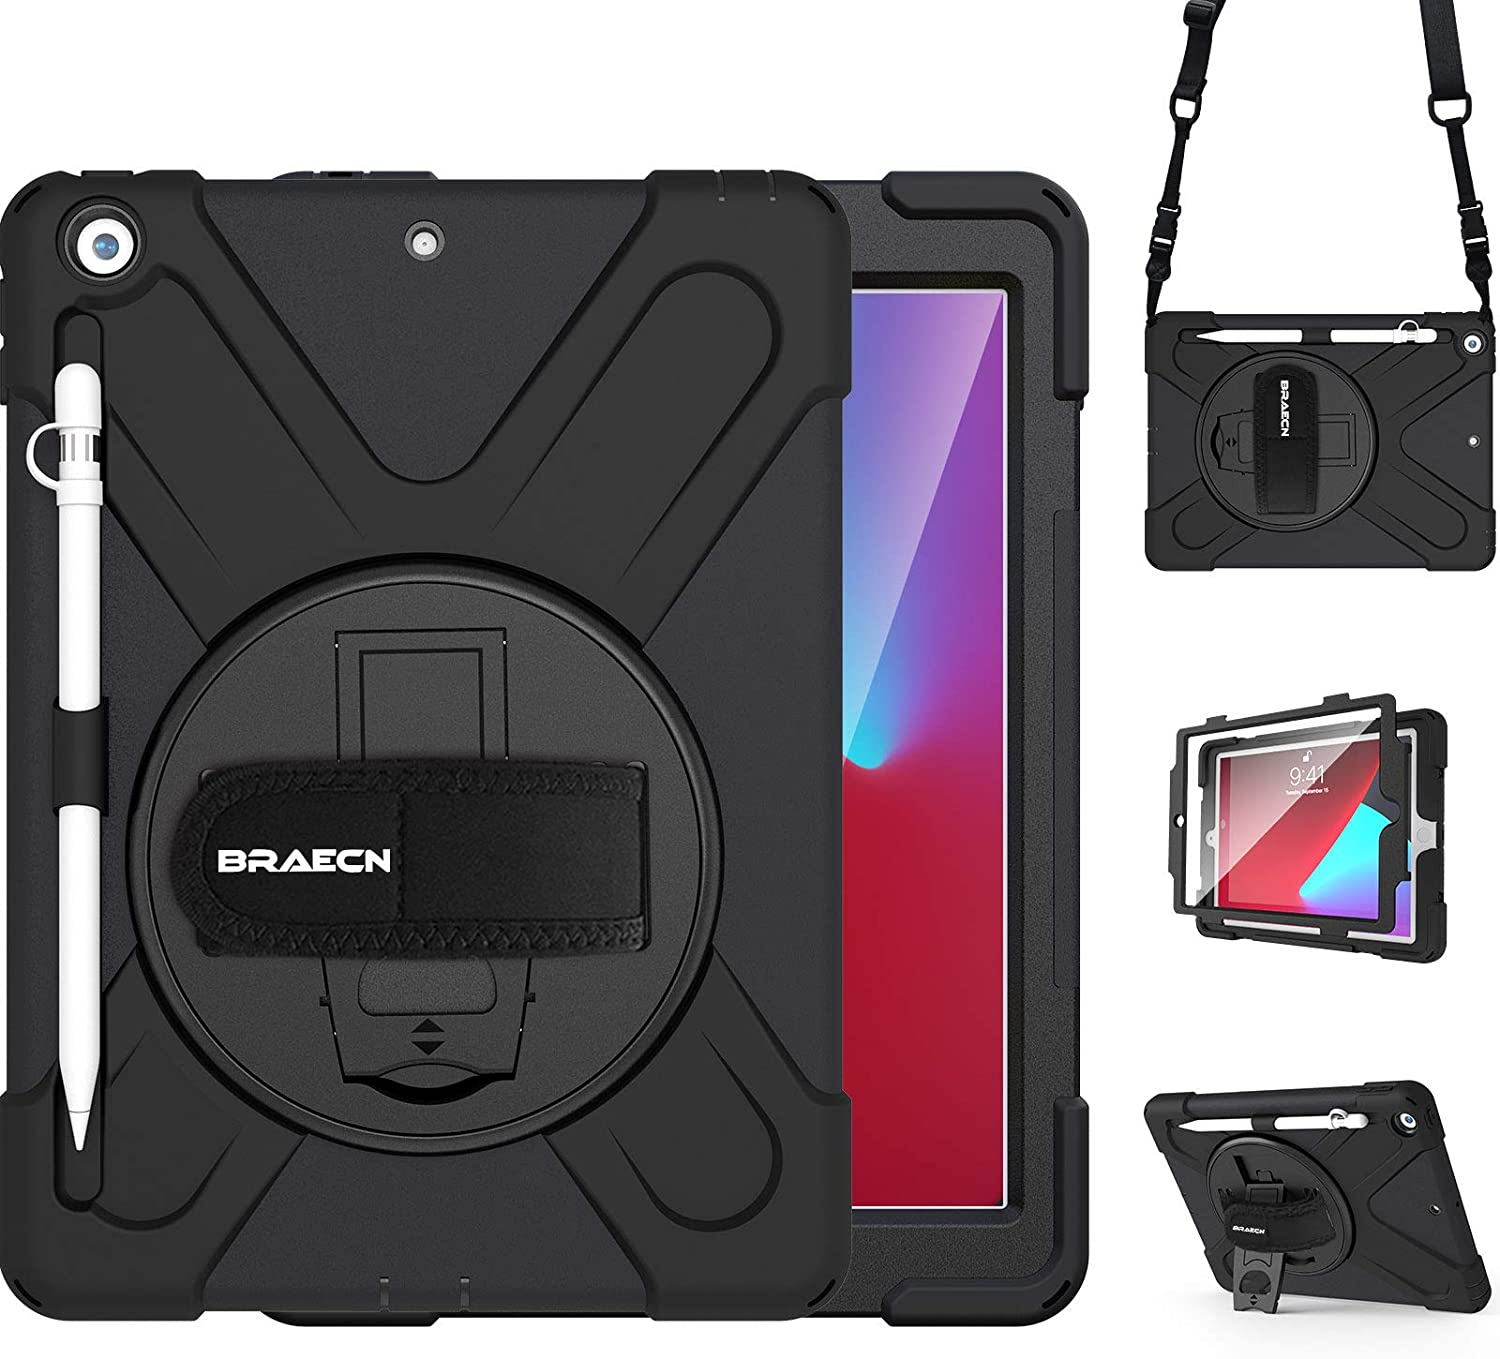 BRAECN iPad 8th Generation Case,Heavy Duty Shockproof Case with Screen Protector, Pencil Holder, Pencil Cap Holder, Hand Strap, Kickstand, Shoulder Strap for iPad 8th/7th Gen 10.2 Inch 2020/2019-Black